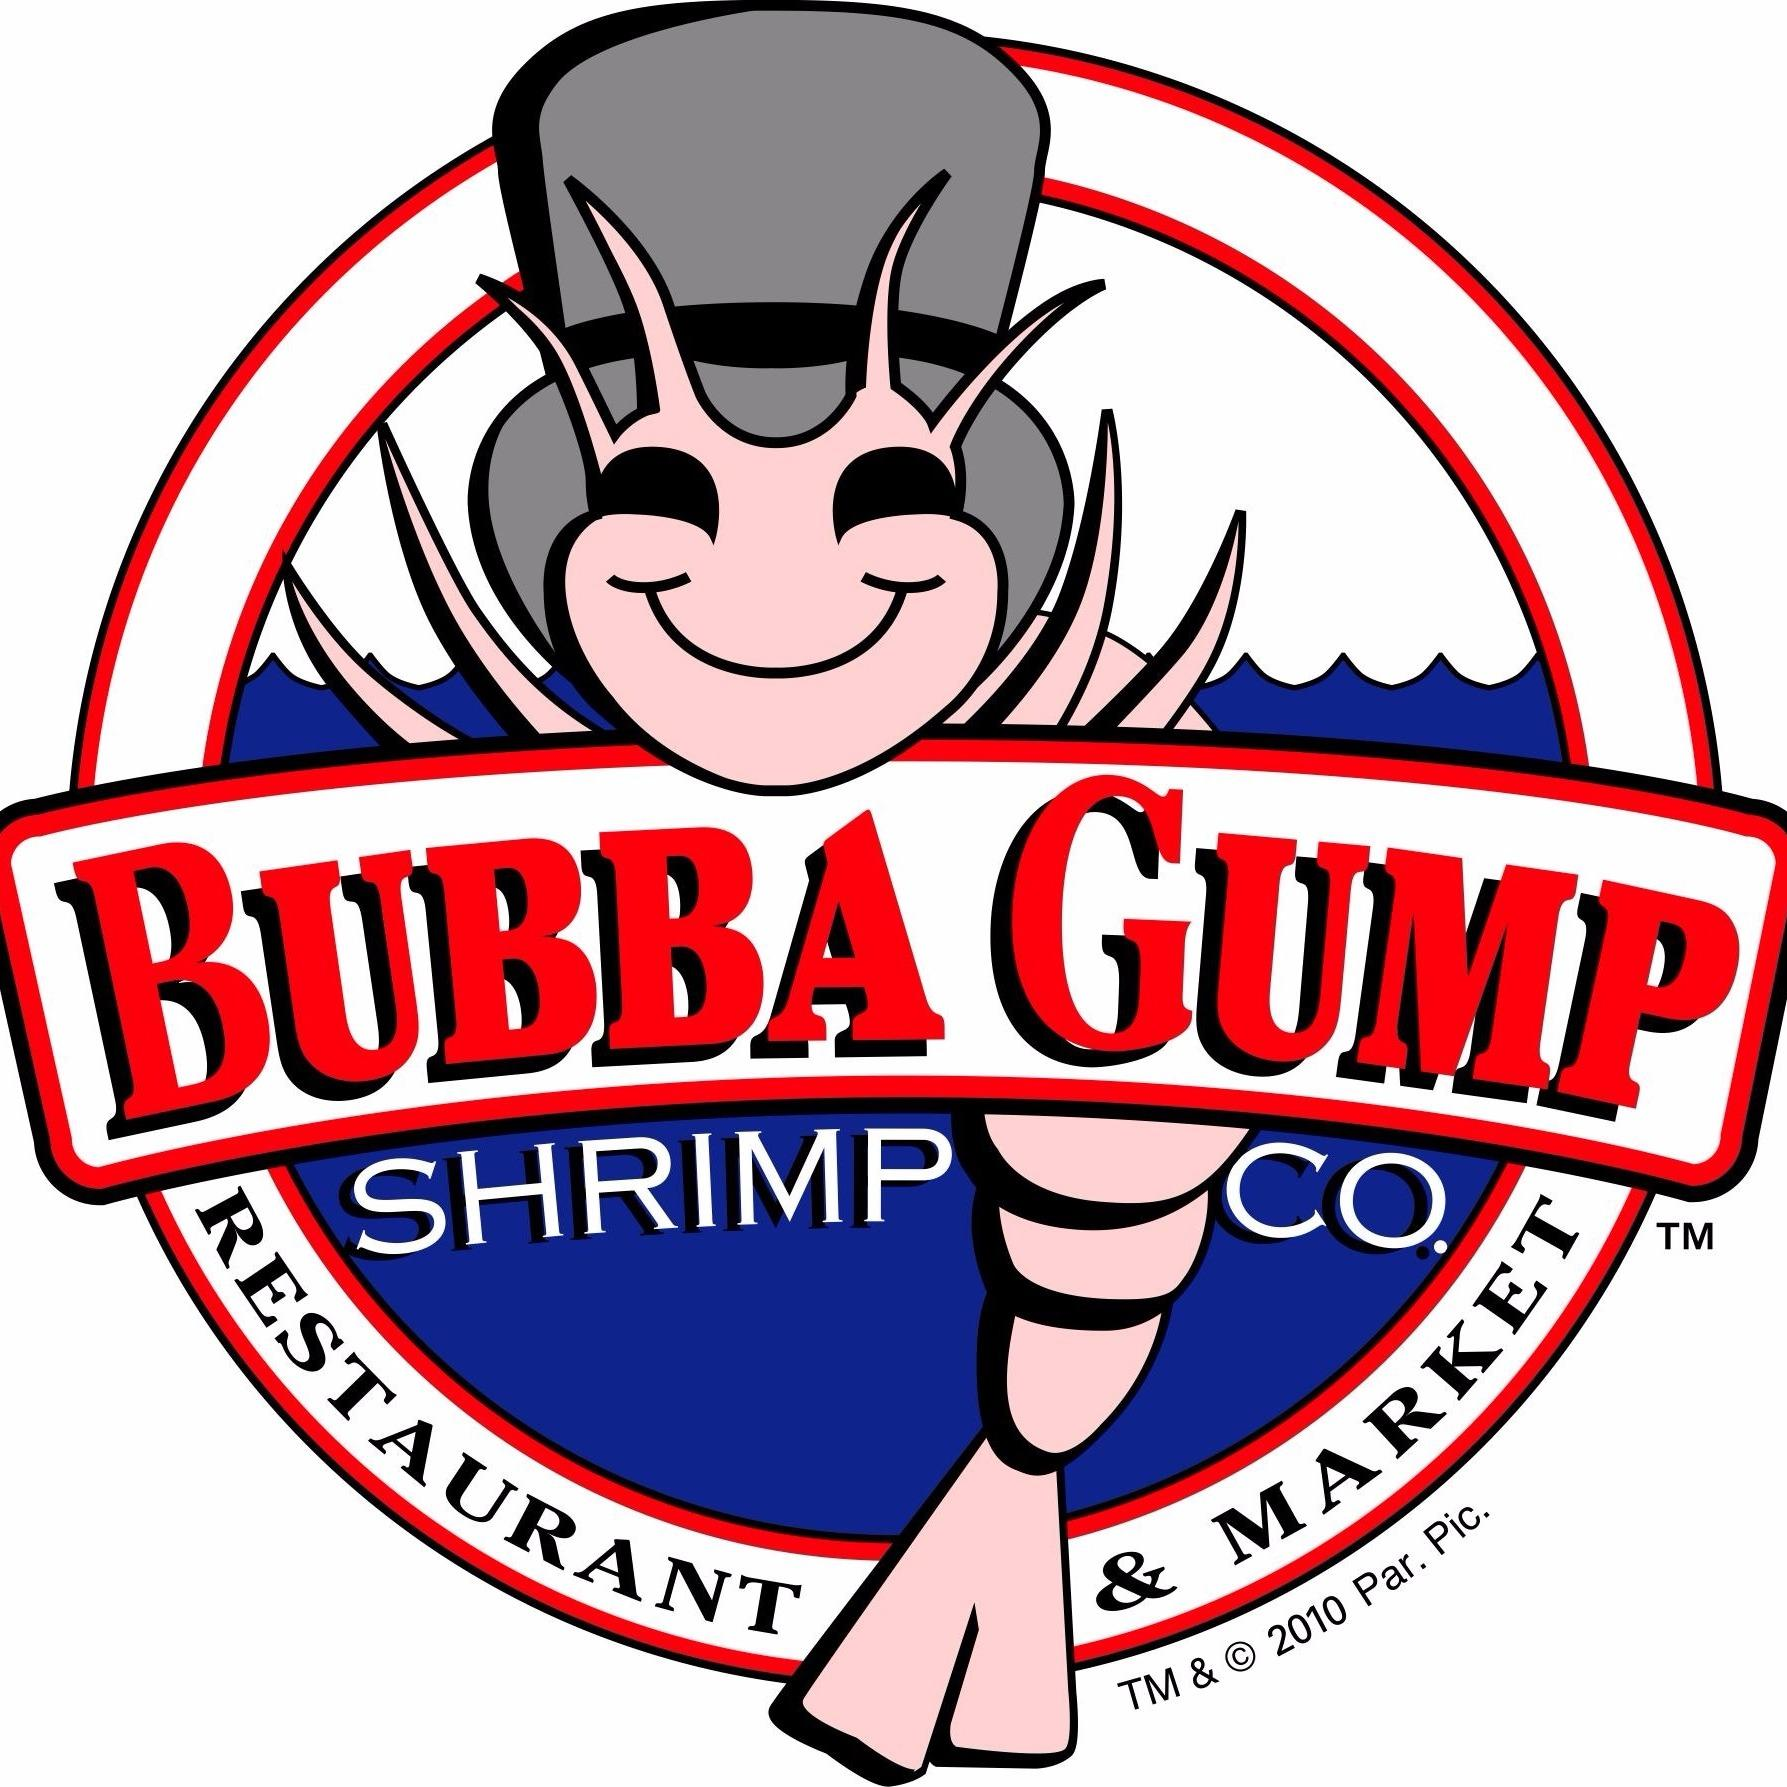 Bubba Gump Shrimp Co. image 13